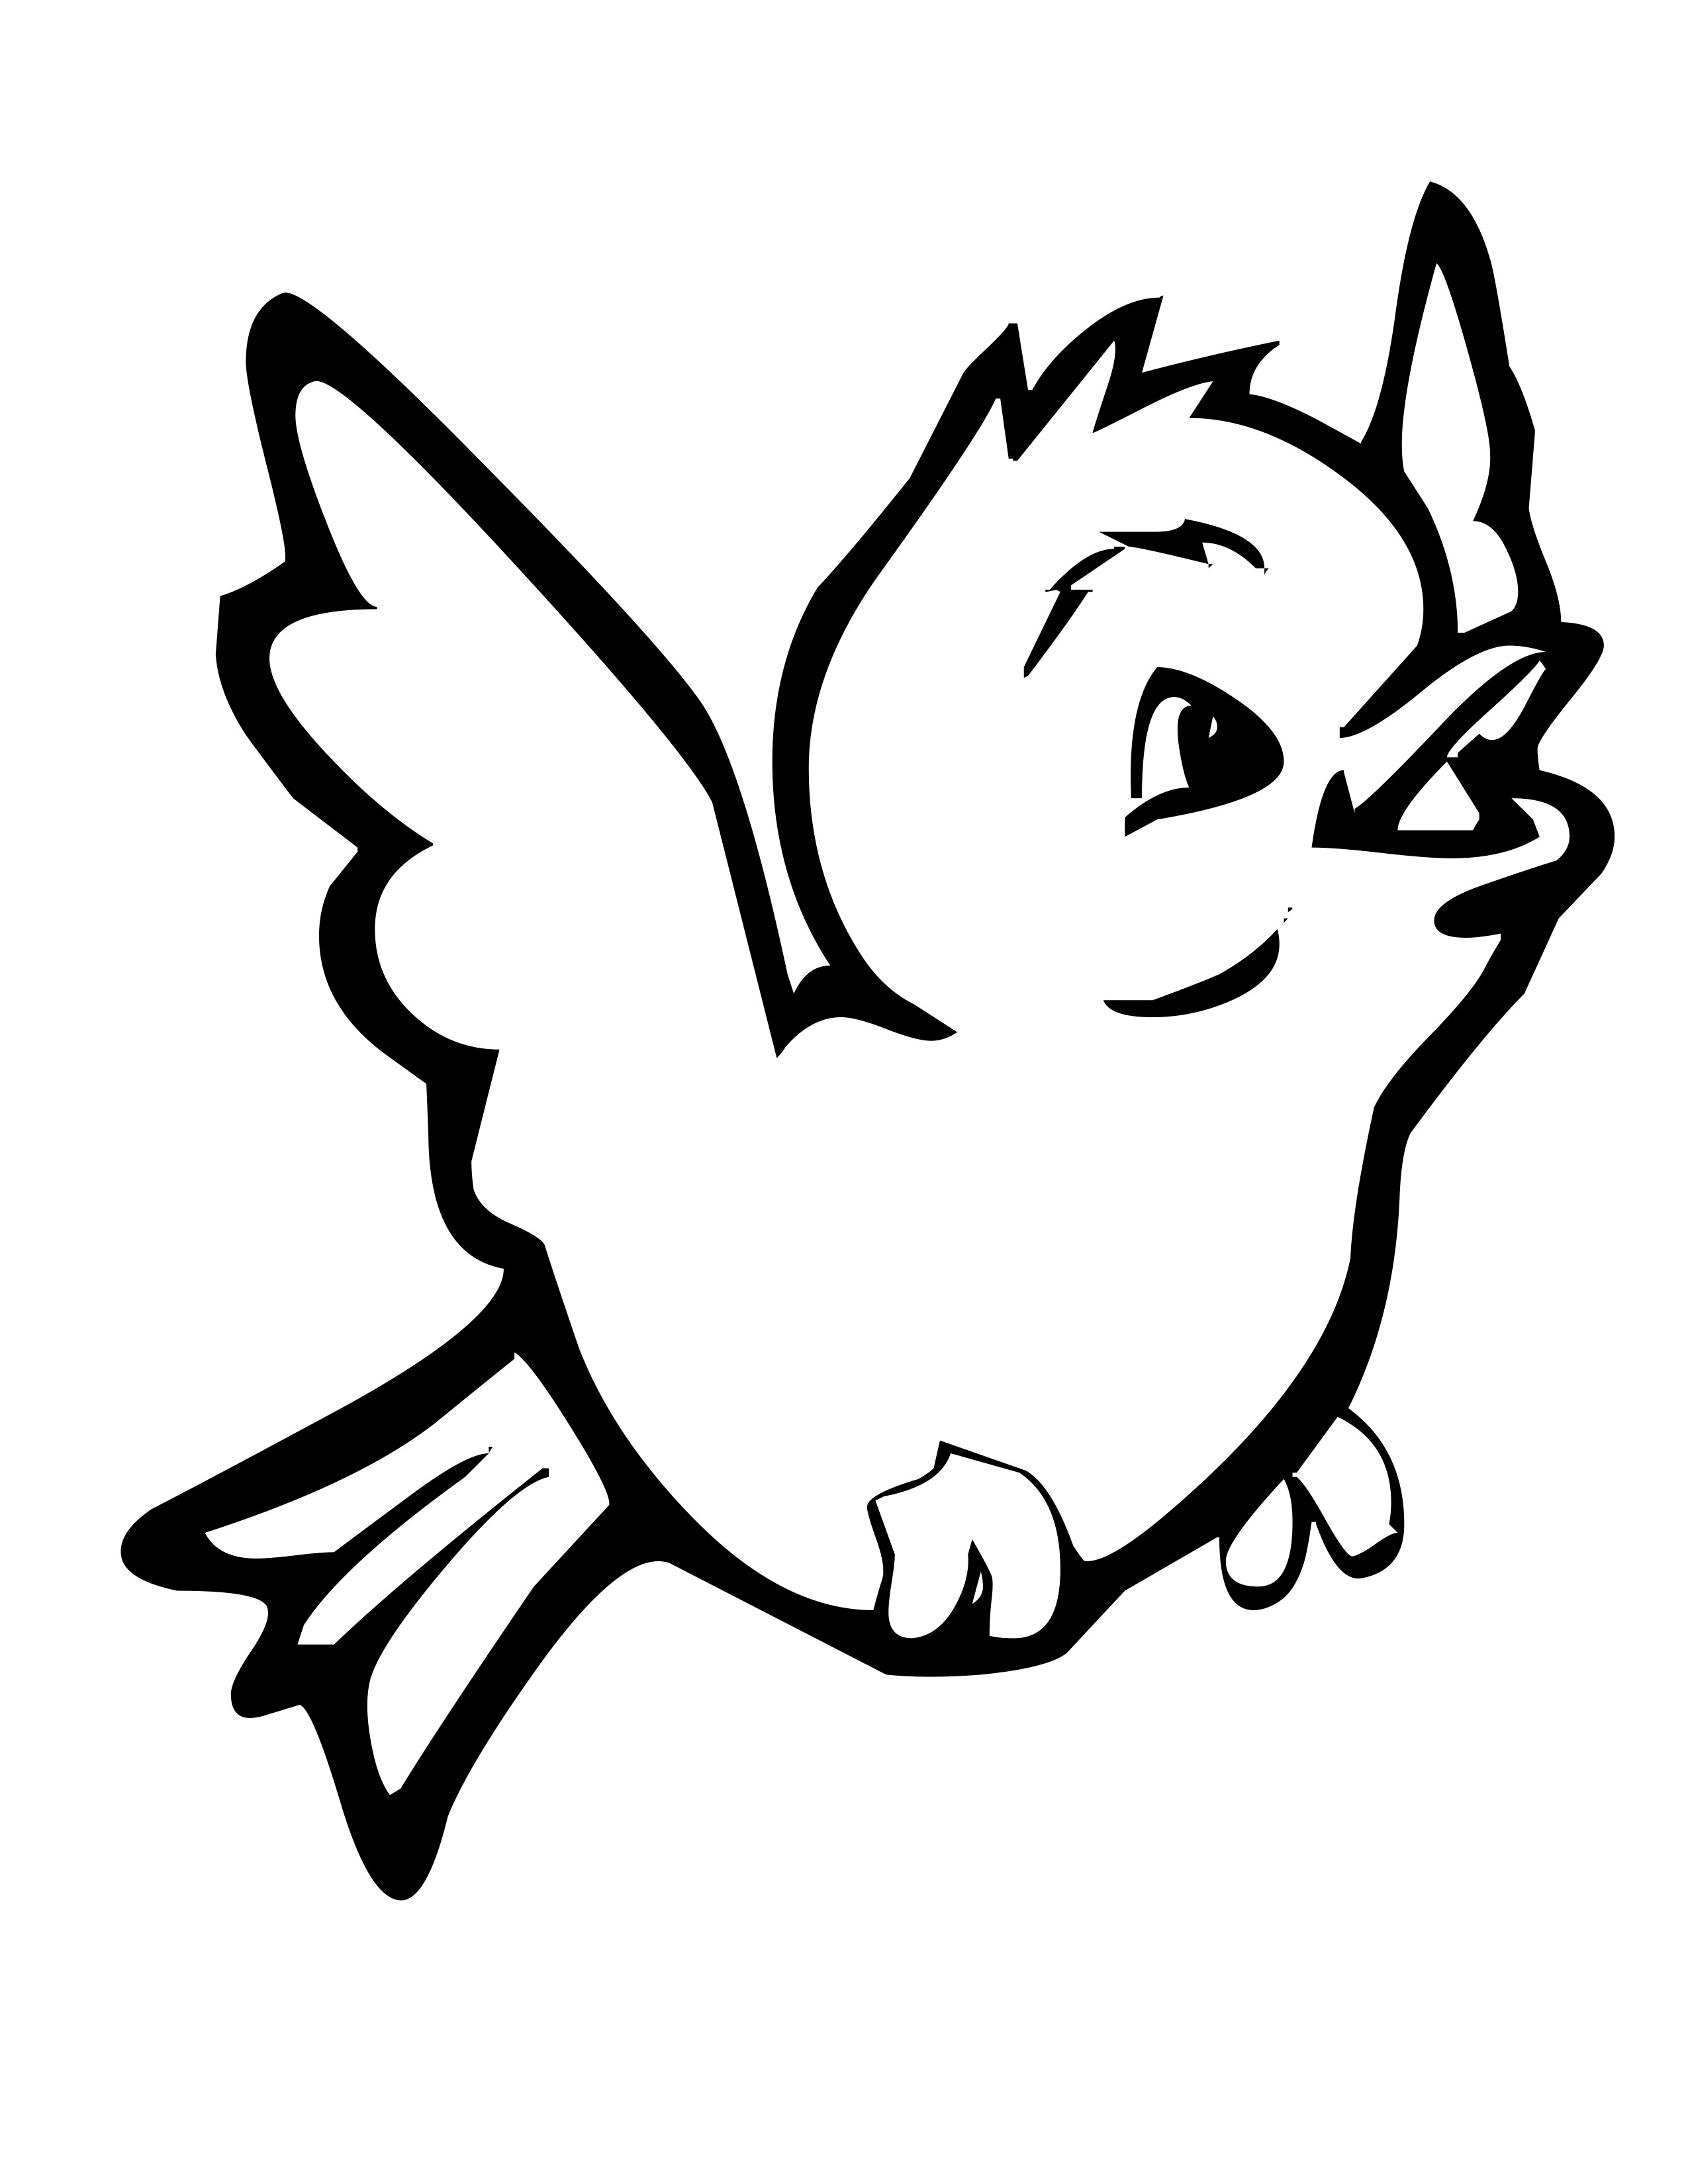 pictures of birds to color cute bird coloring page for kids tsgoscom of pictures color birds to